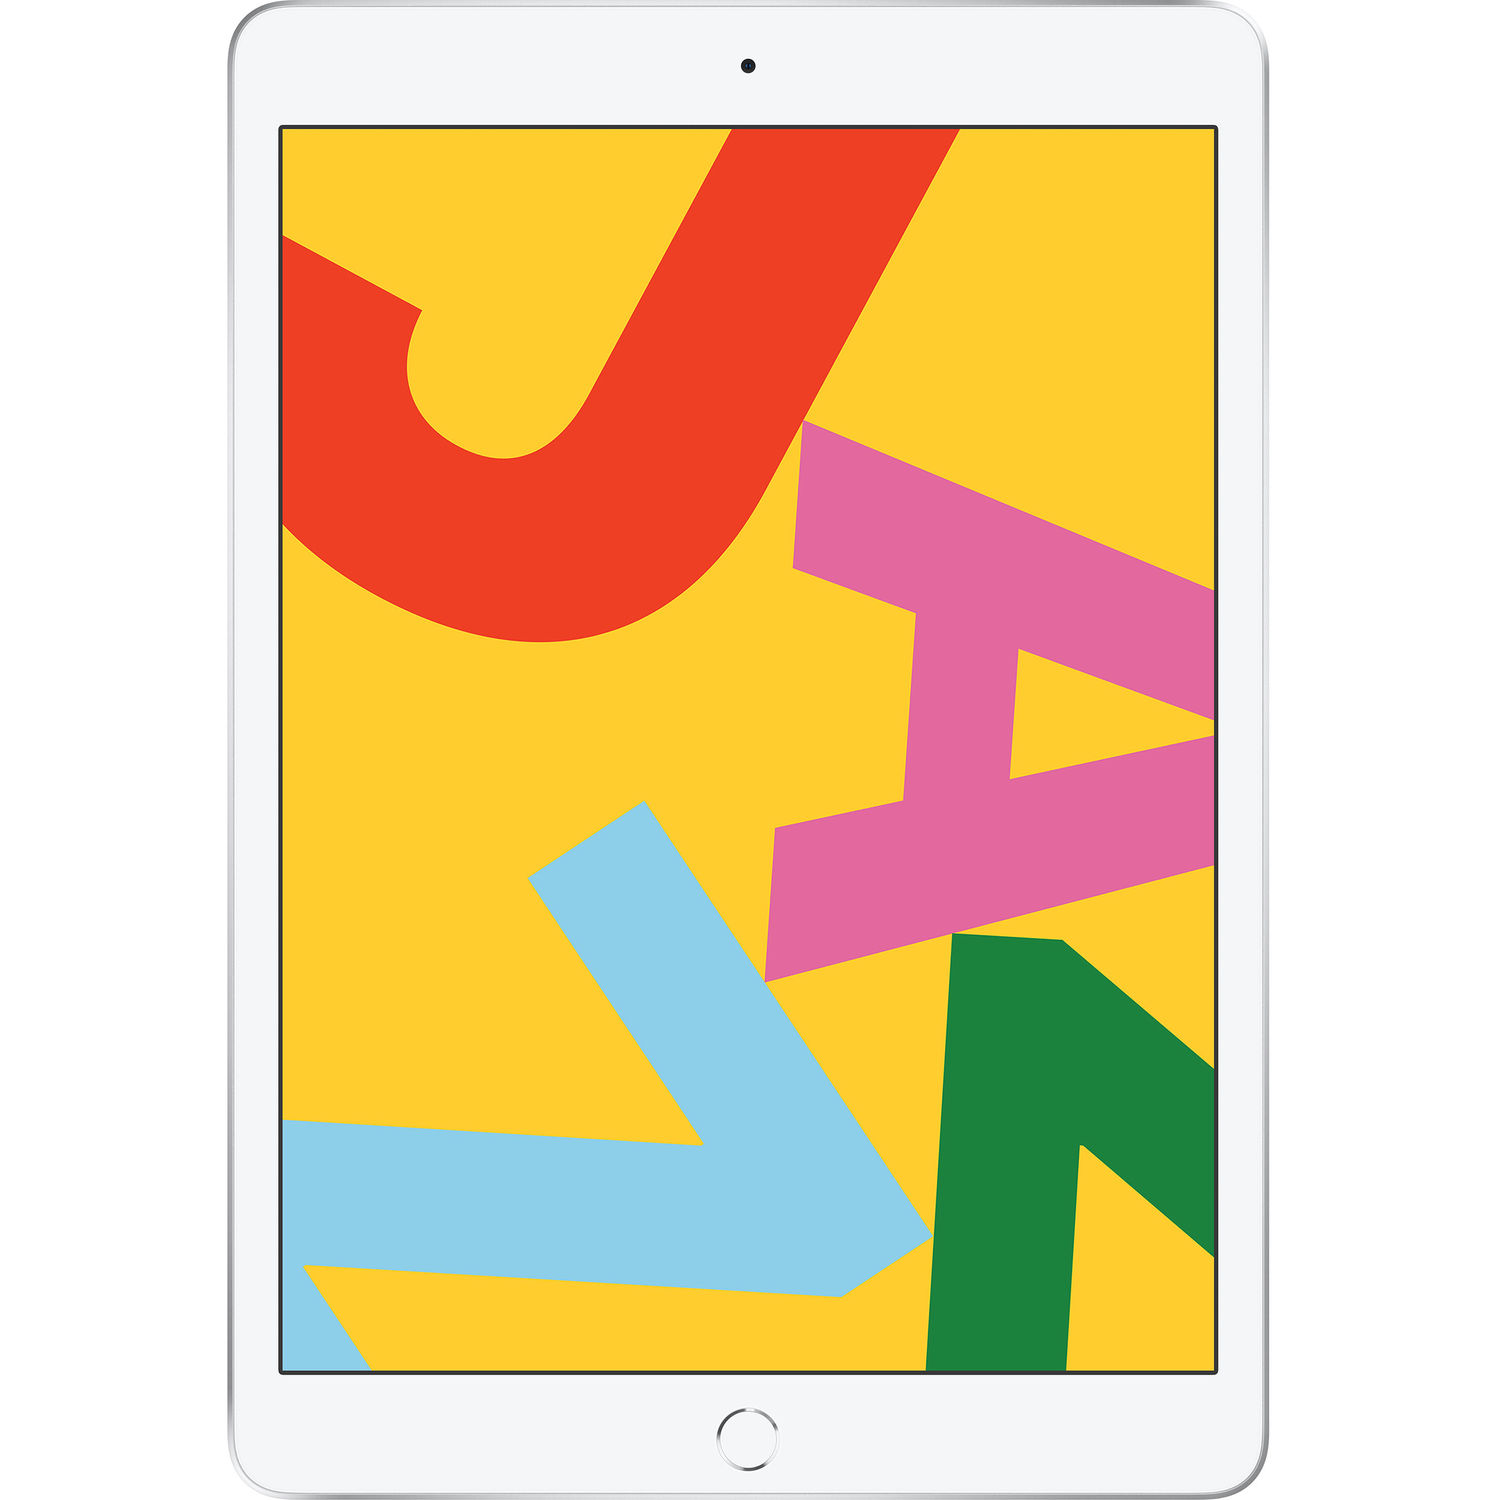 Image of Apple iPad 10.2 (2019) 128GB Wifi - White Silver [with 1 year official Apple Warranty]